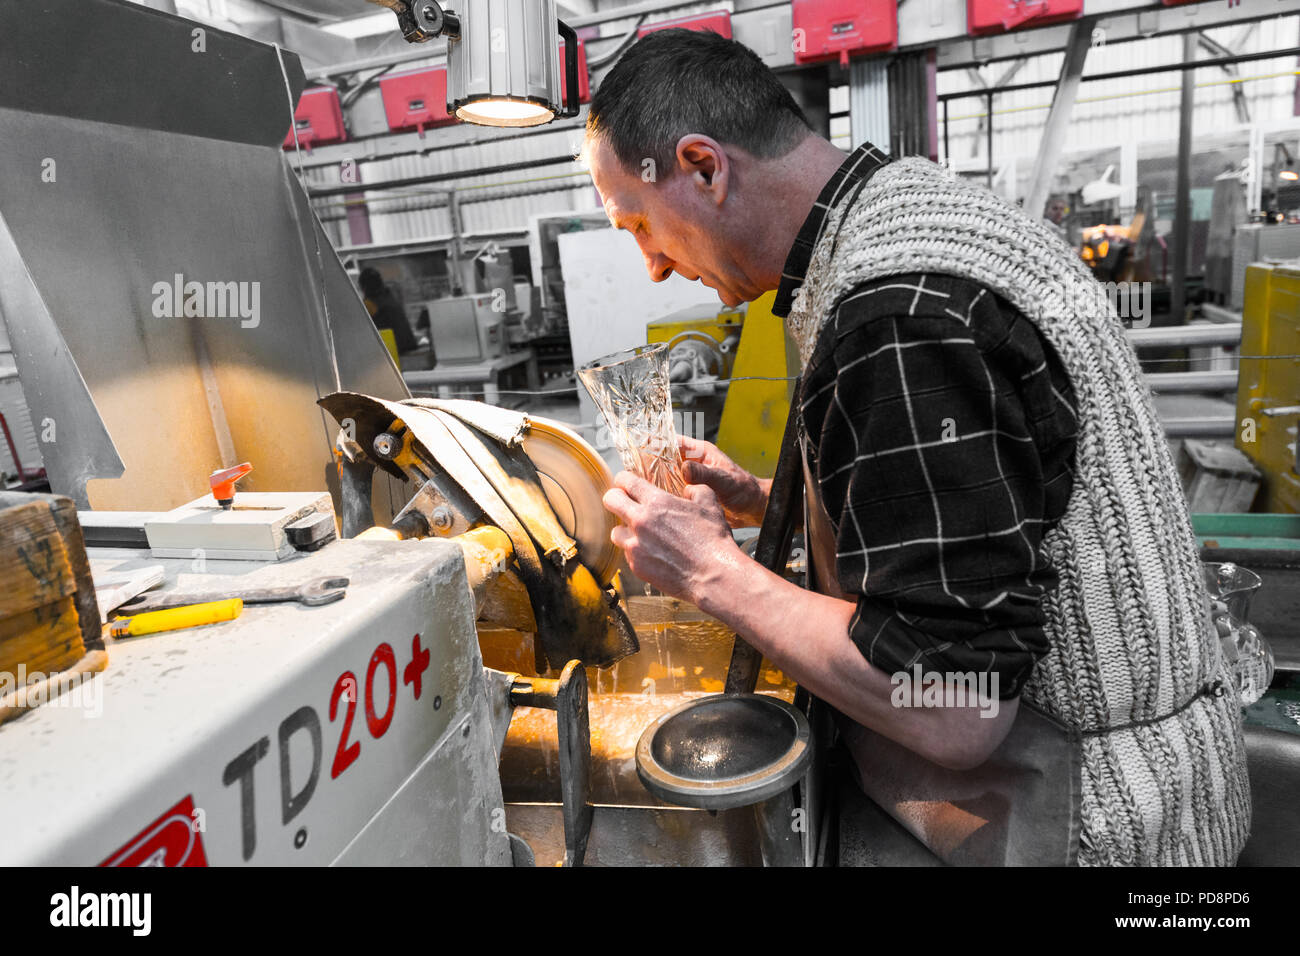 Minsk, Belarus - February 01, 2018: Glass production worker working with industry equipment on factory background Glass production worker working with industry equipment on factory background - Stock Image